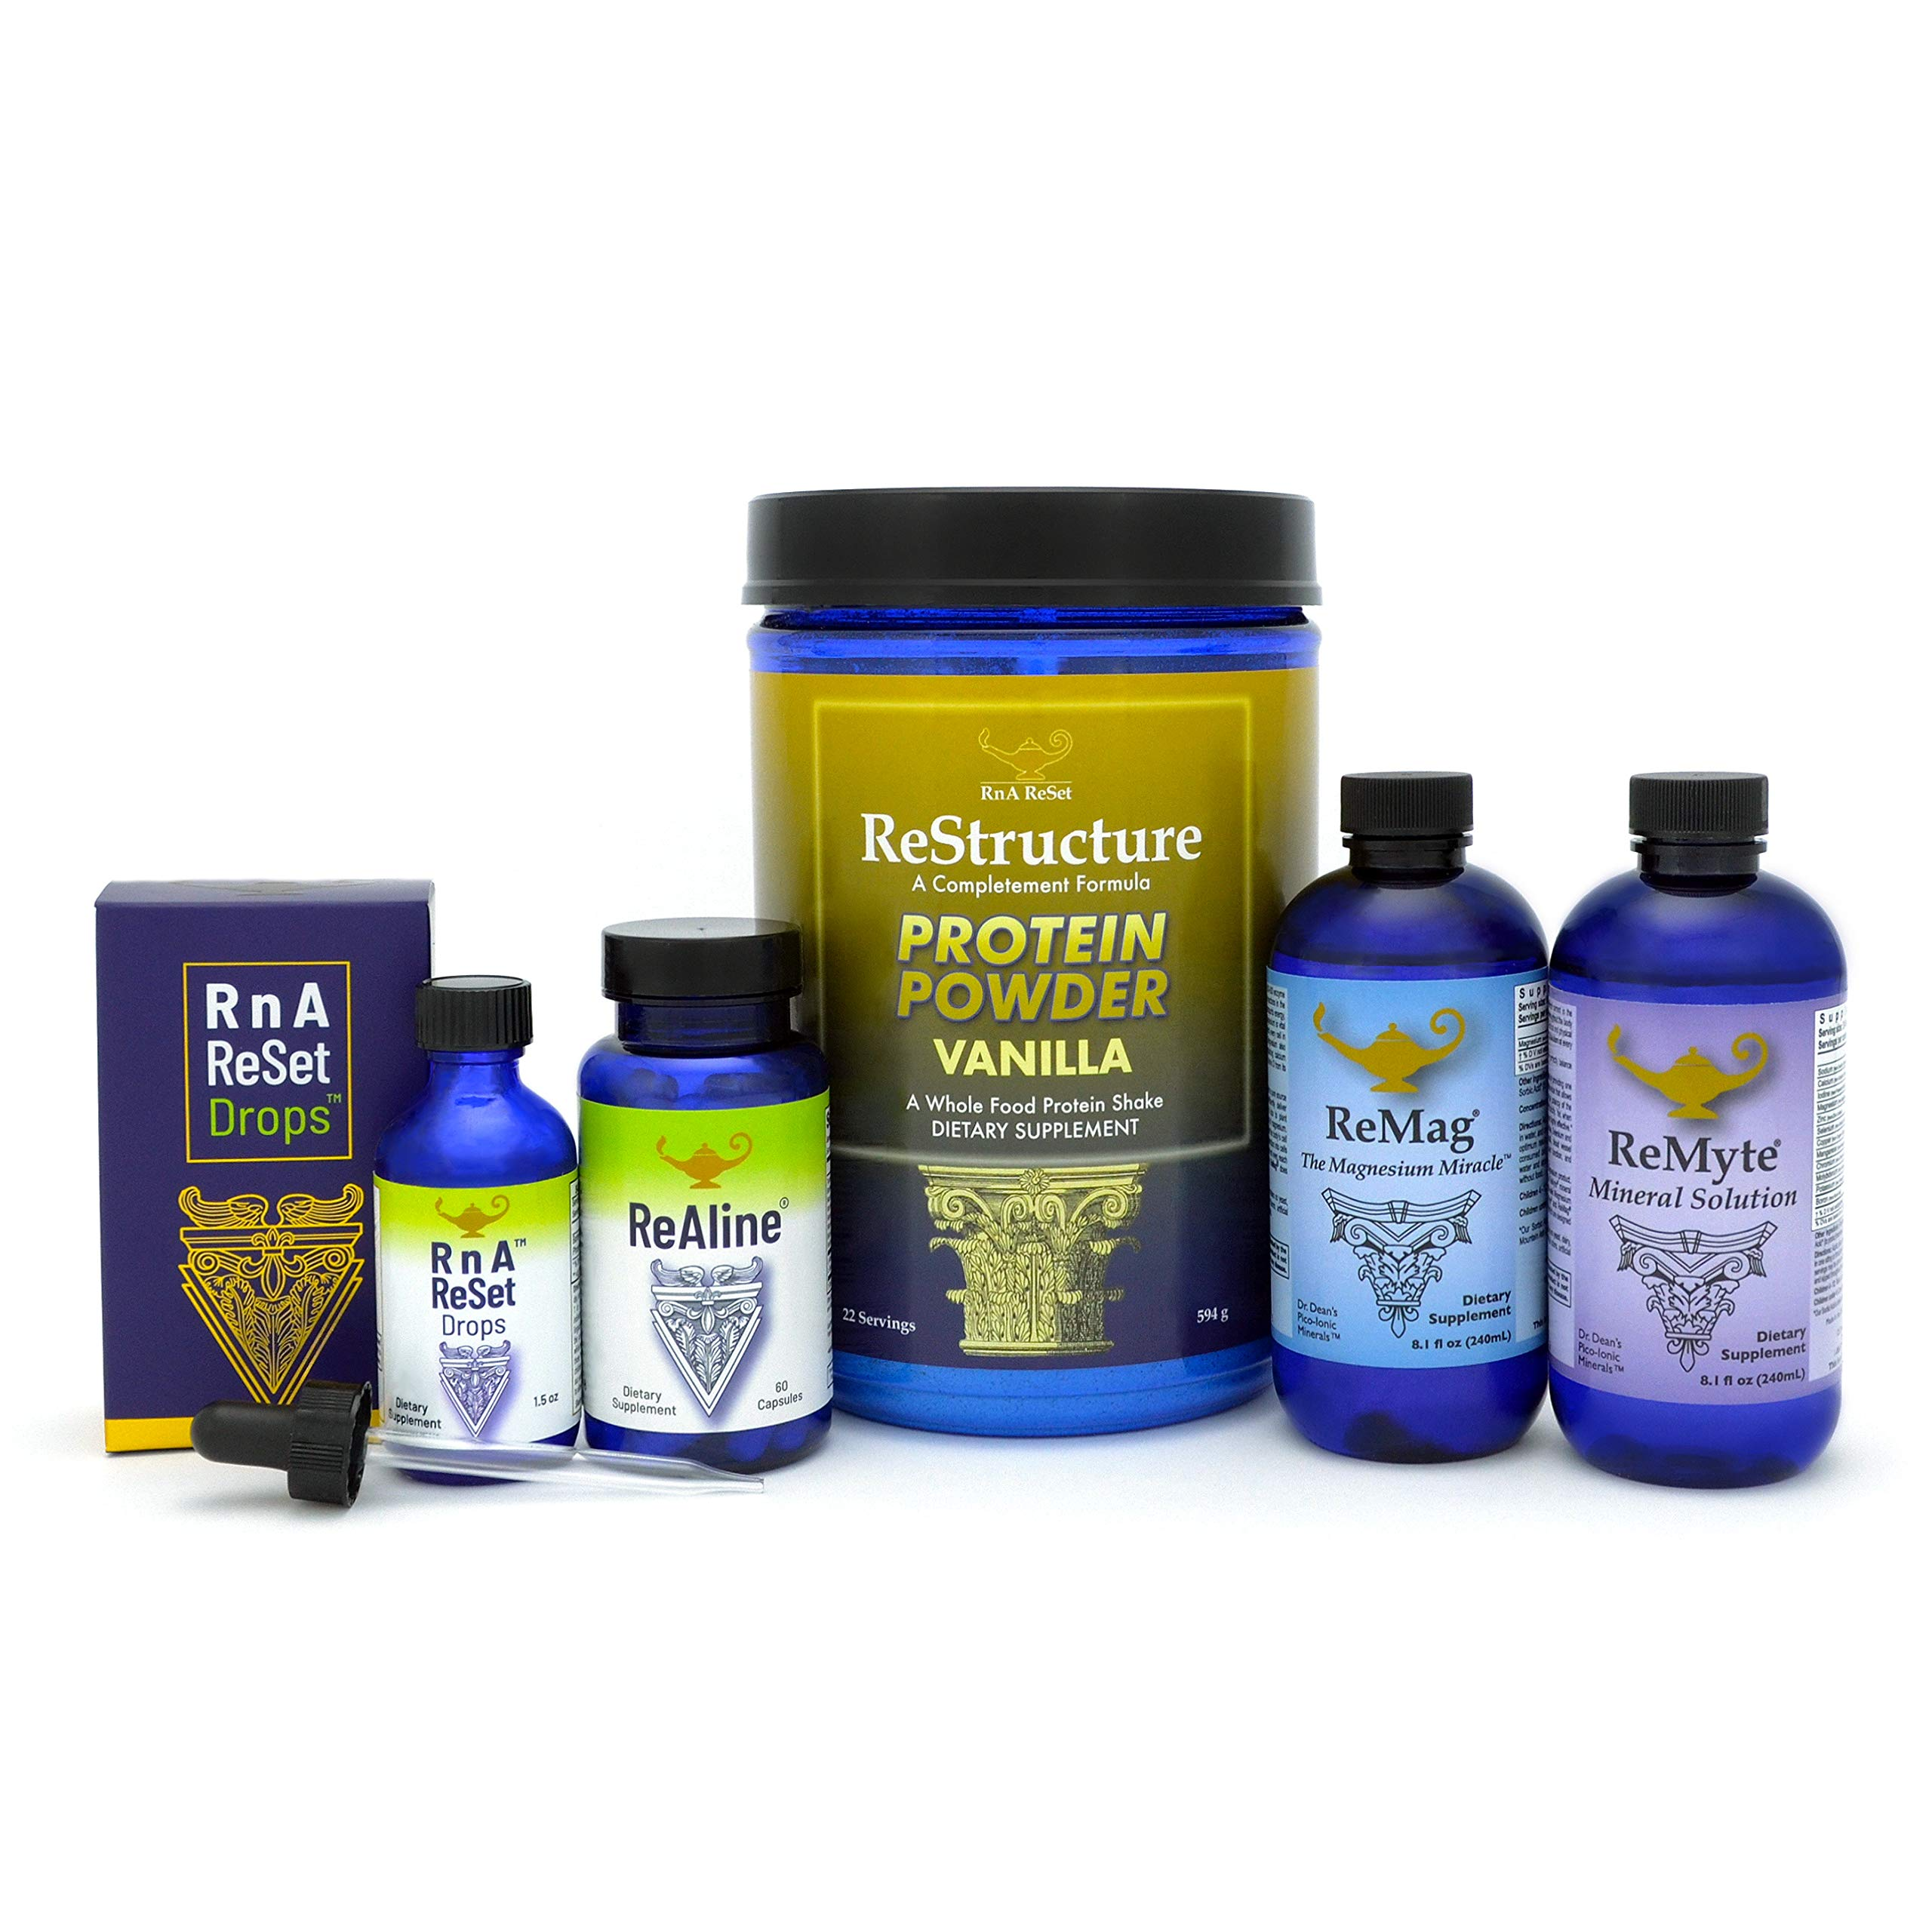 Dr. Dean's Total Body Reset Bundle Includes Pico-Ionic ReMag, ReMyte, ReAline, ReStructure, RNA Drops